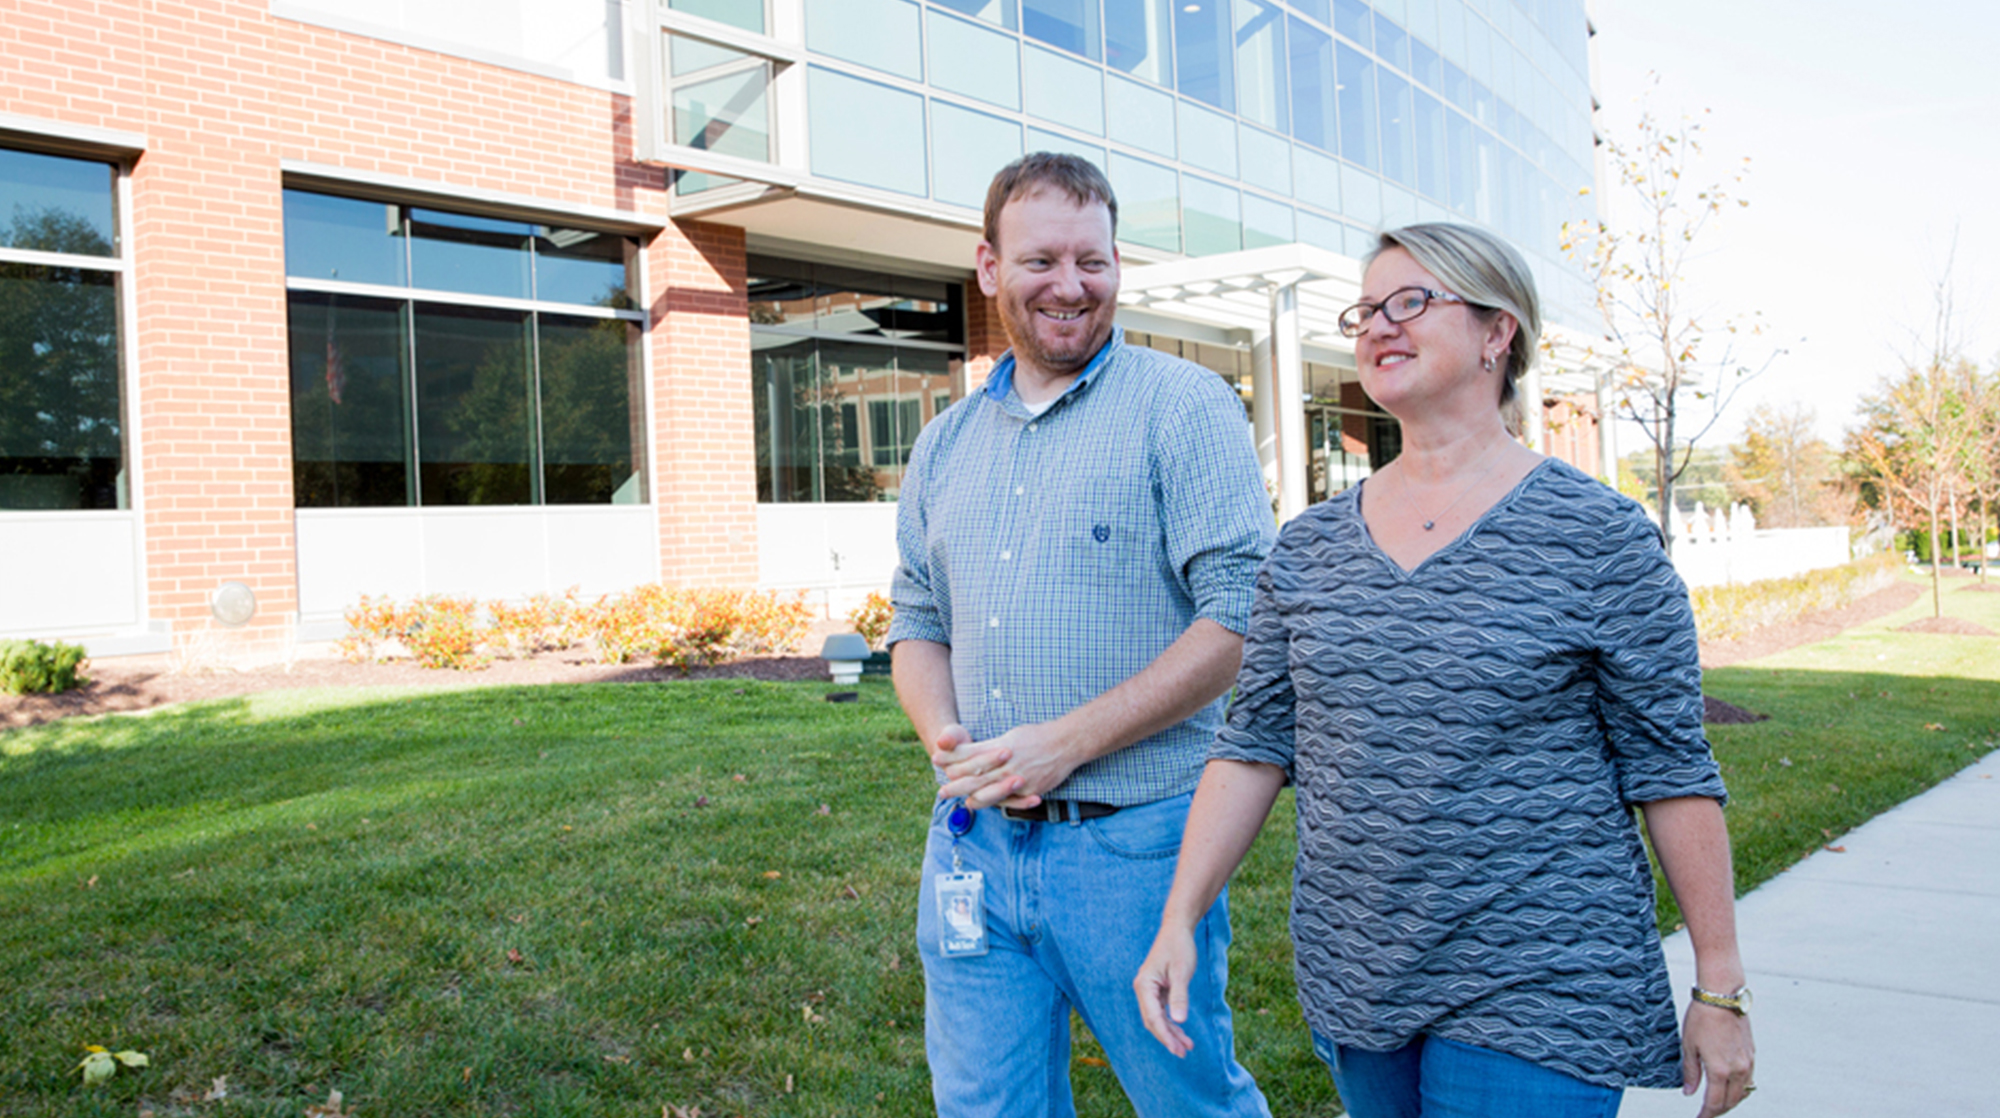 Career and Growth Opportunities at MiTek - A man and woman walk outside of the MiTek corporate office